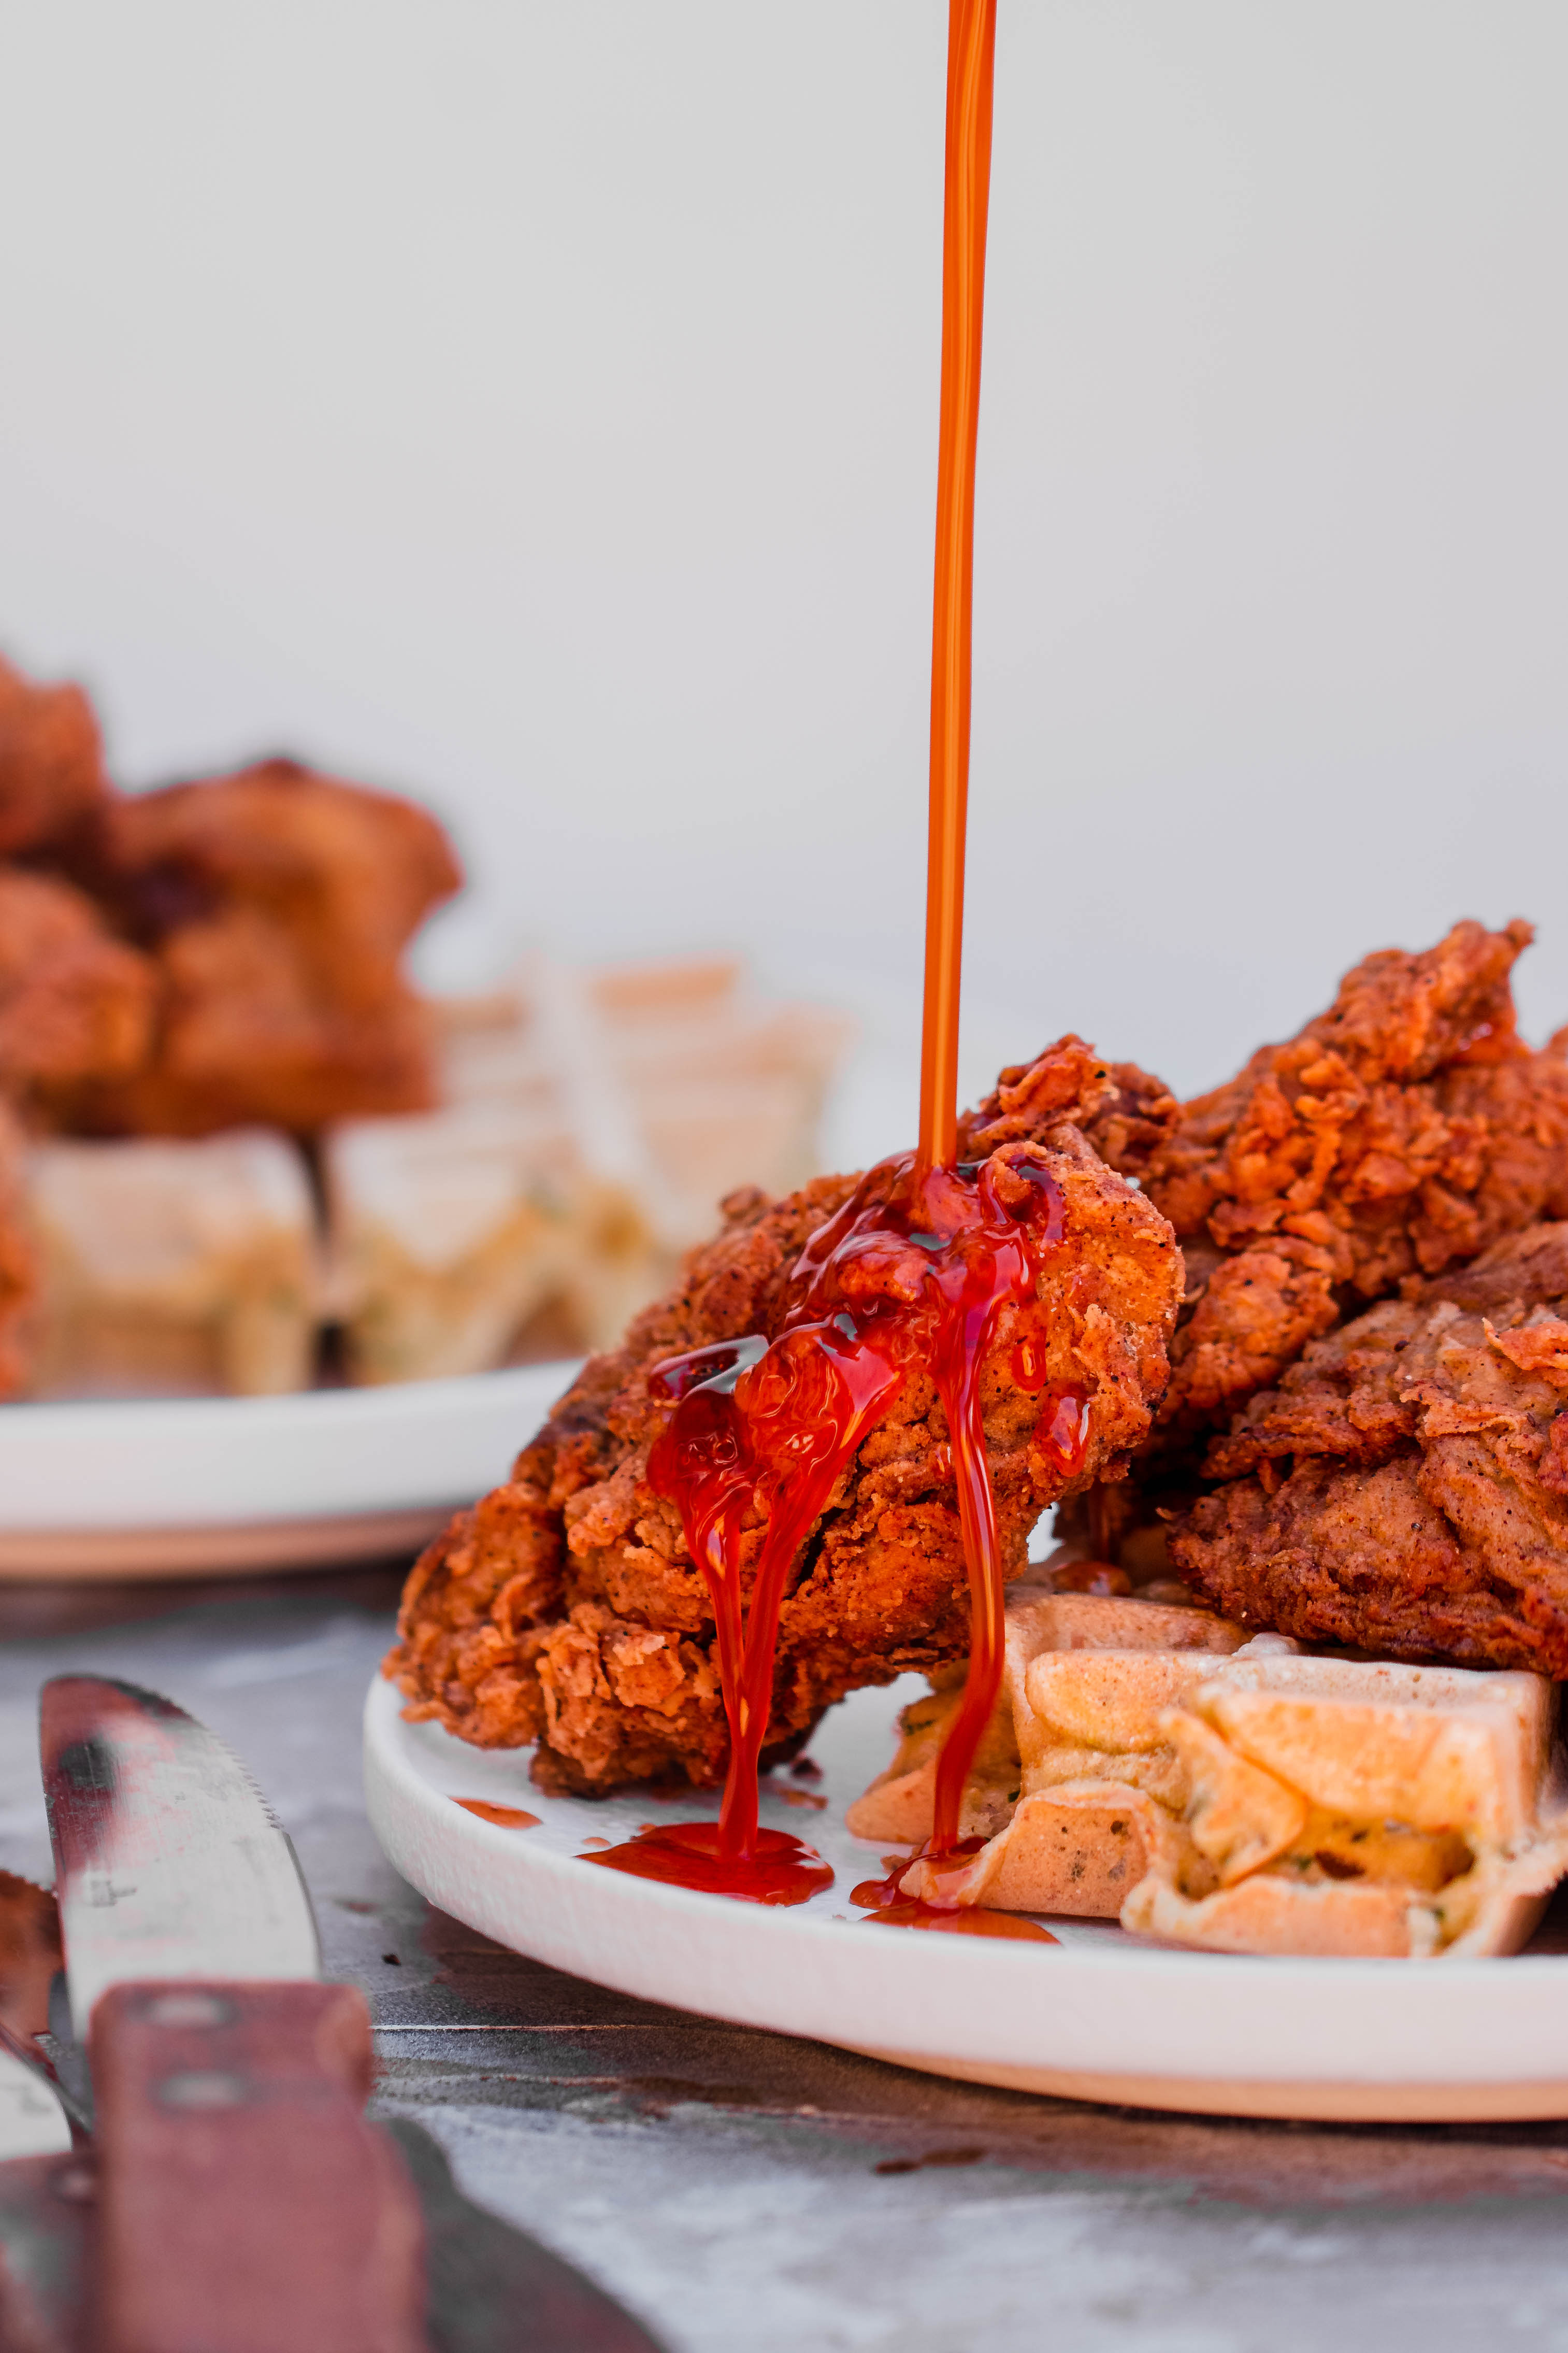 cayenne maple syrup drizzling over vegan chicken and waffles